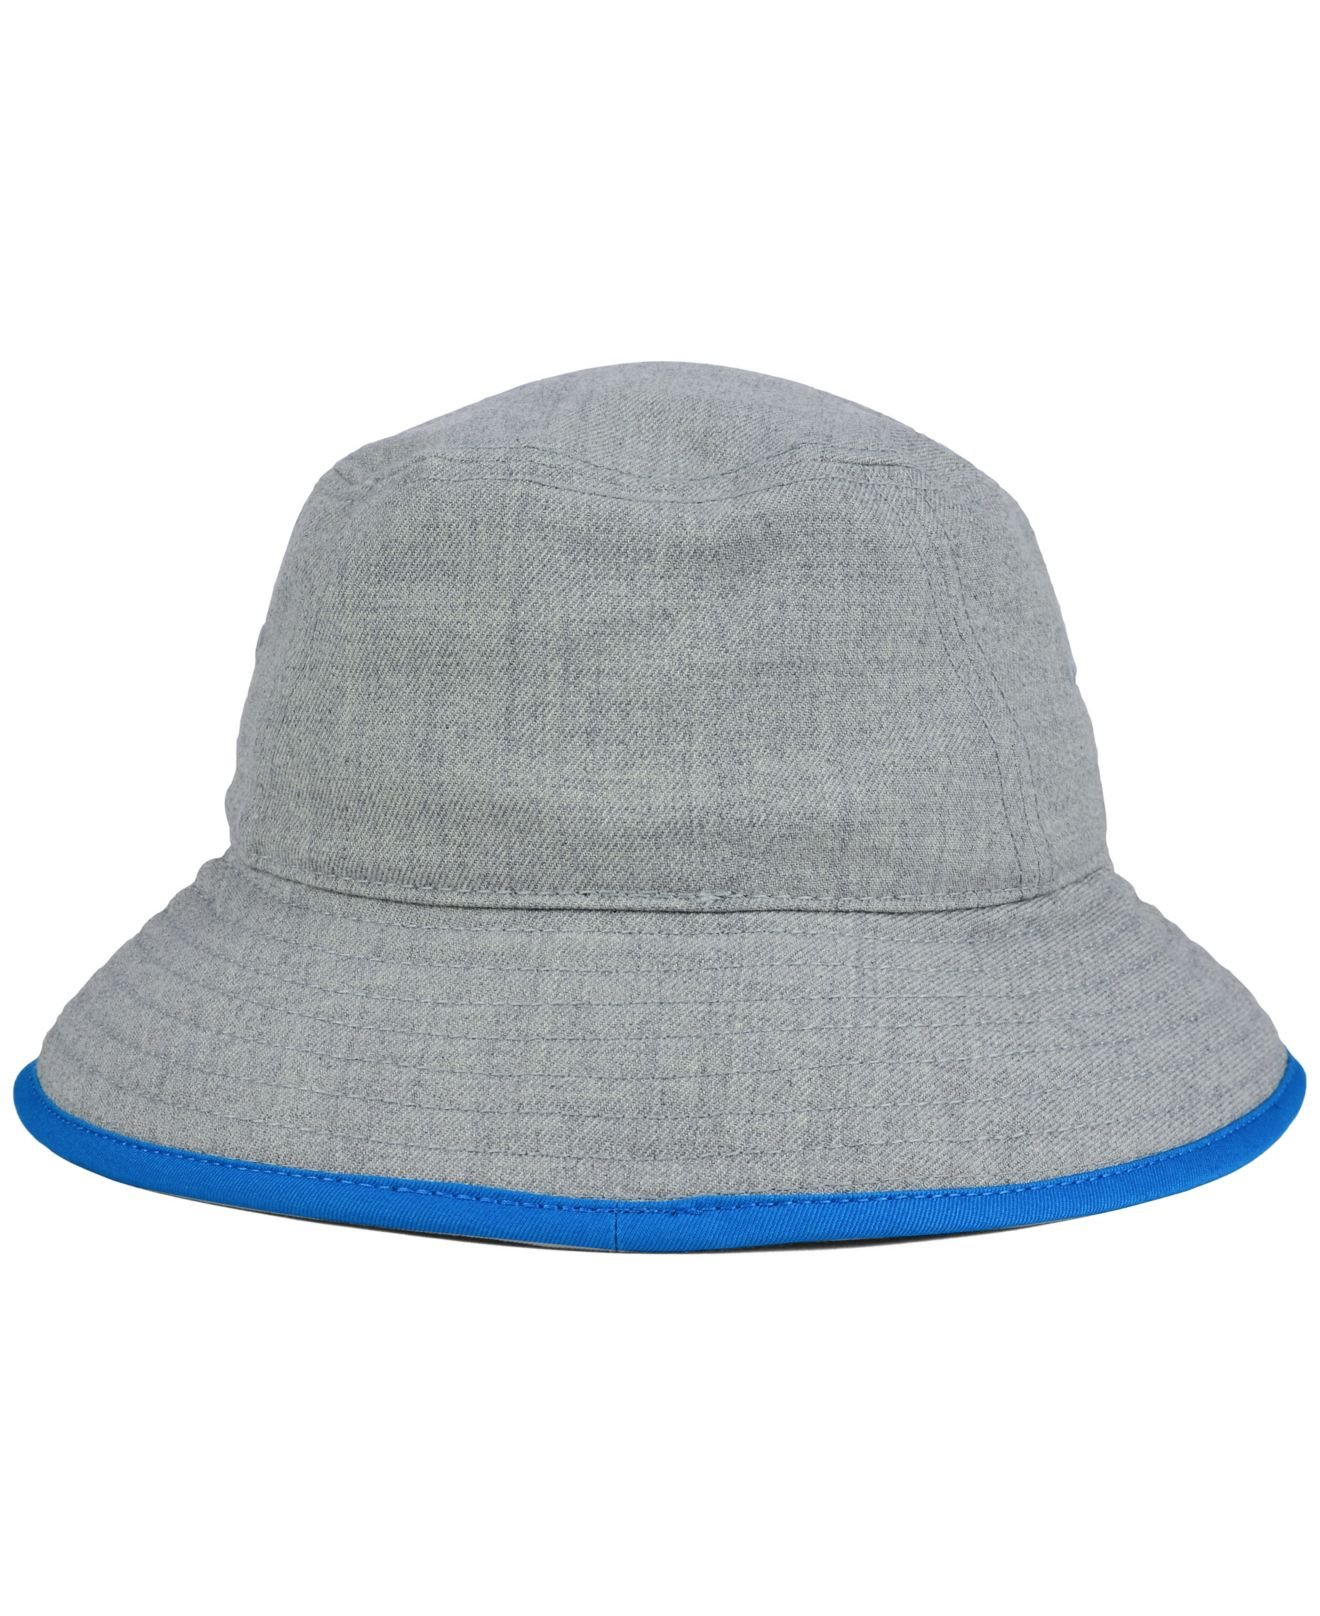 9901e10e854 ... Training Camp Visor - Lyst  stable quality 40071 08a3b Lyst - Ktz  Carolina Panthers Nfl Heather Gray Bucket Hat in ...